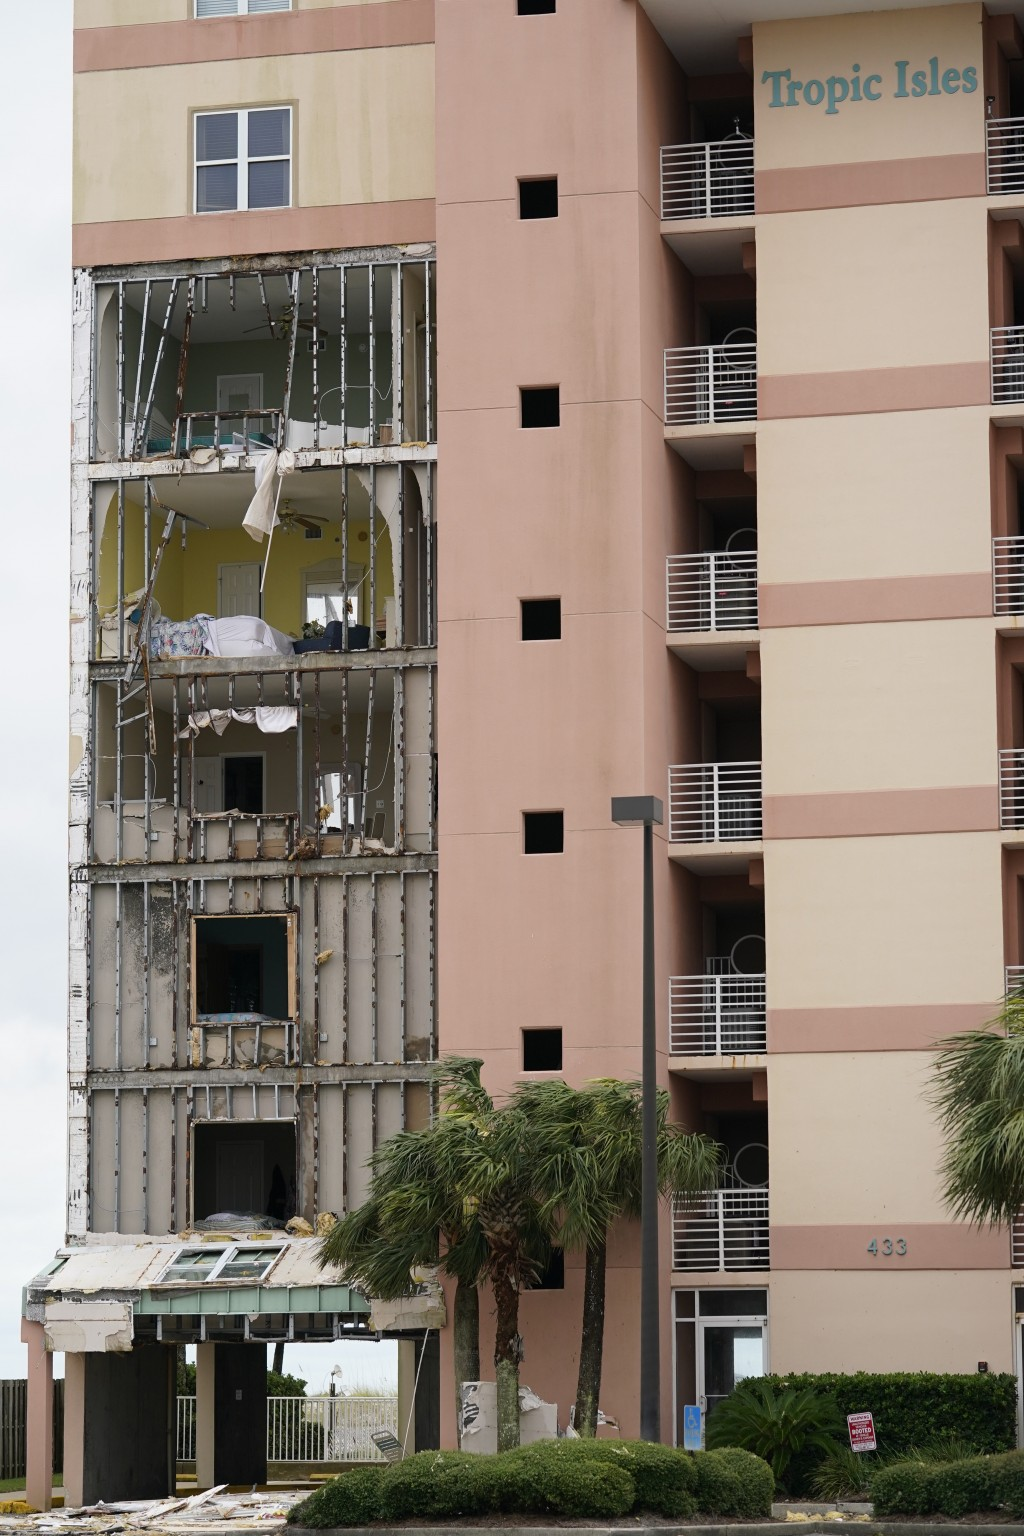 Tropic Isles condominiums are seen after Hurricane Sally moved through the area, Wednesday, Sept. 16, 2020, in Orange Beach, Ala. Hurricane Sally made...